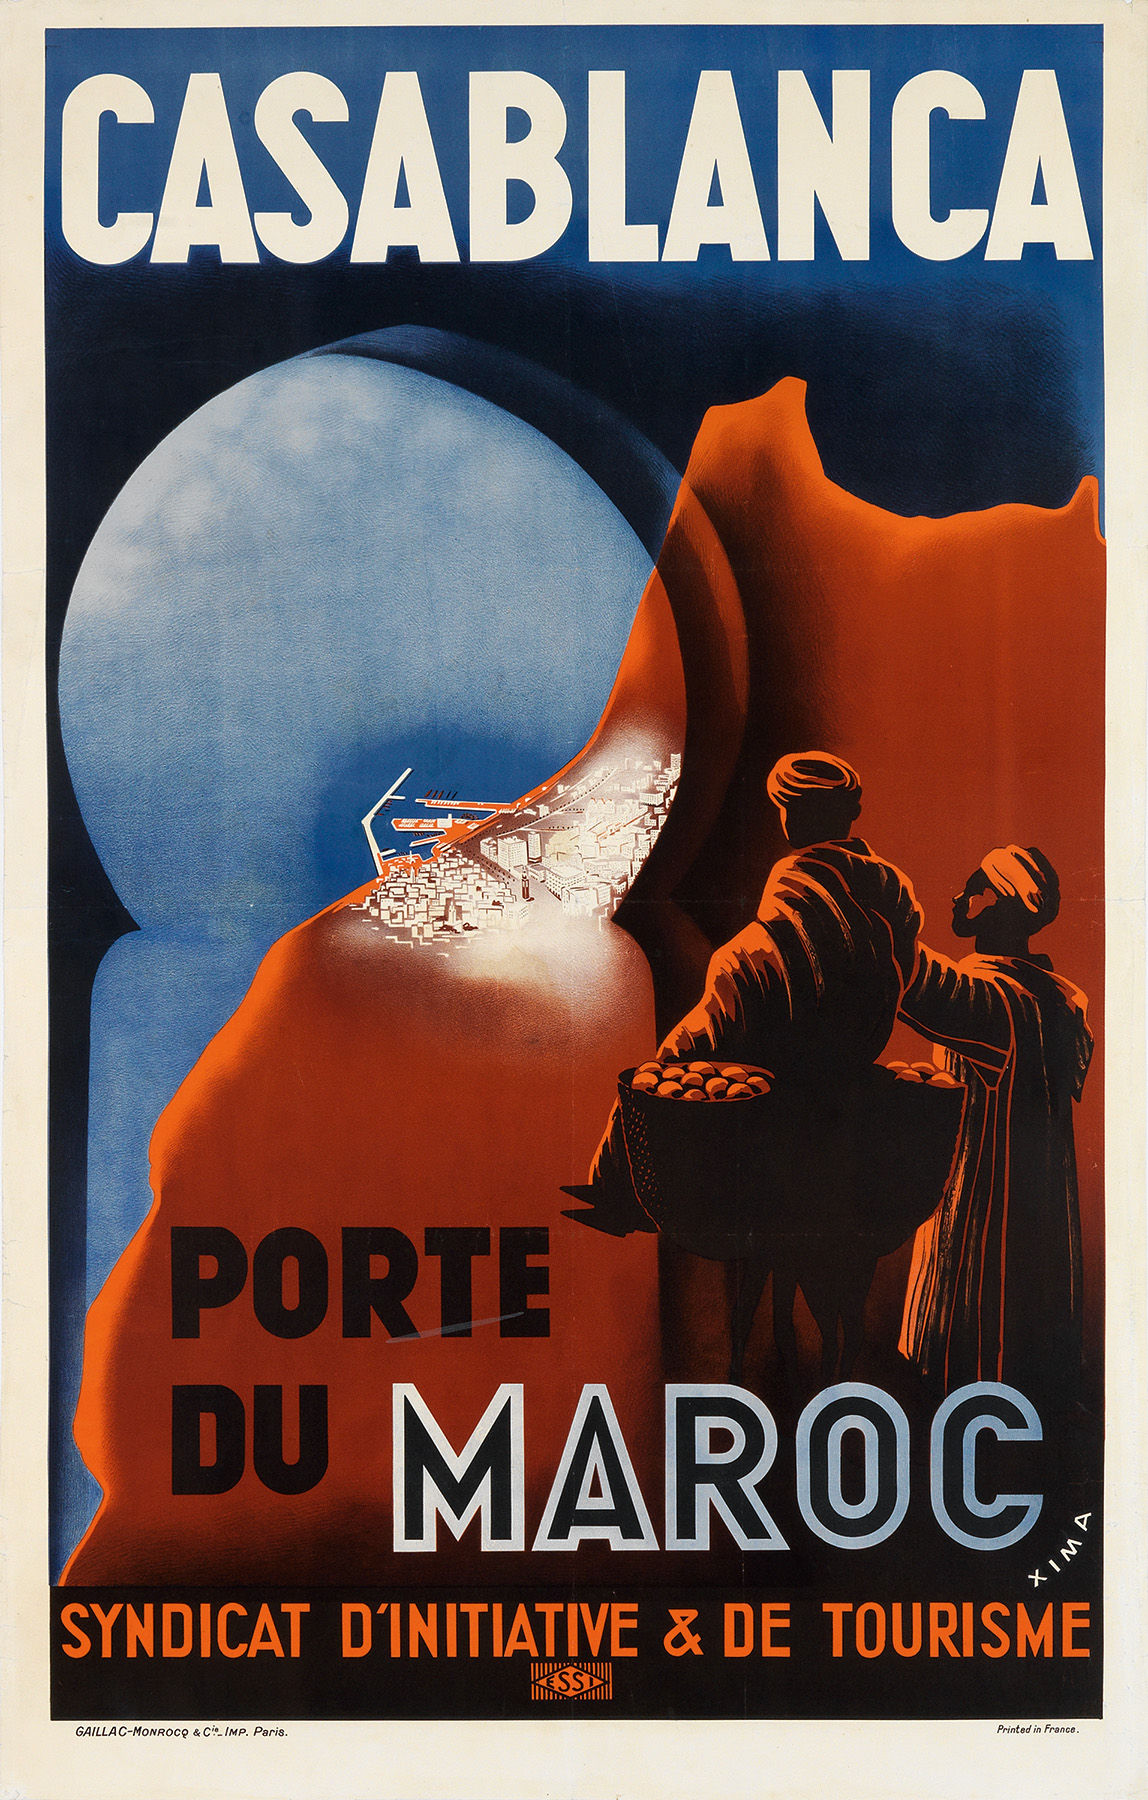 Rare & Important Travel Posters